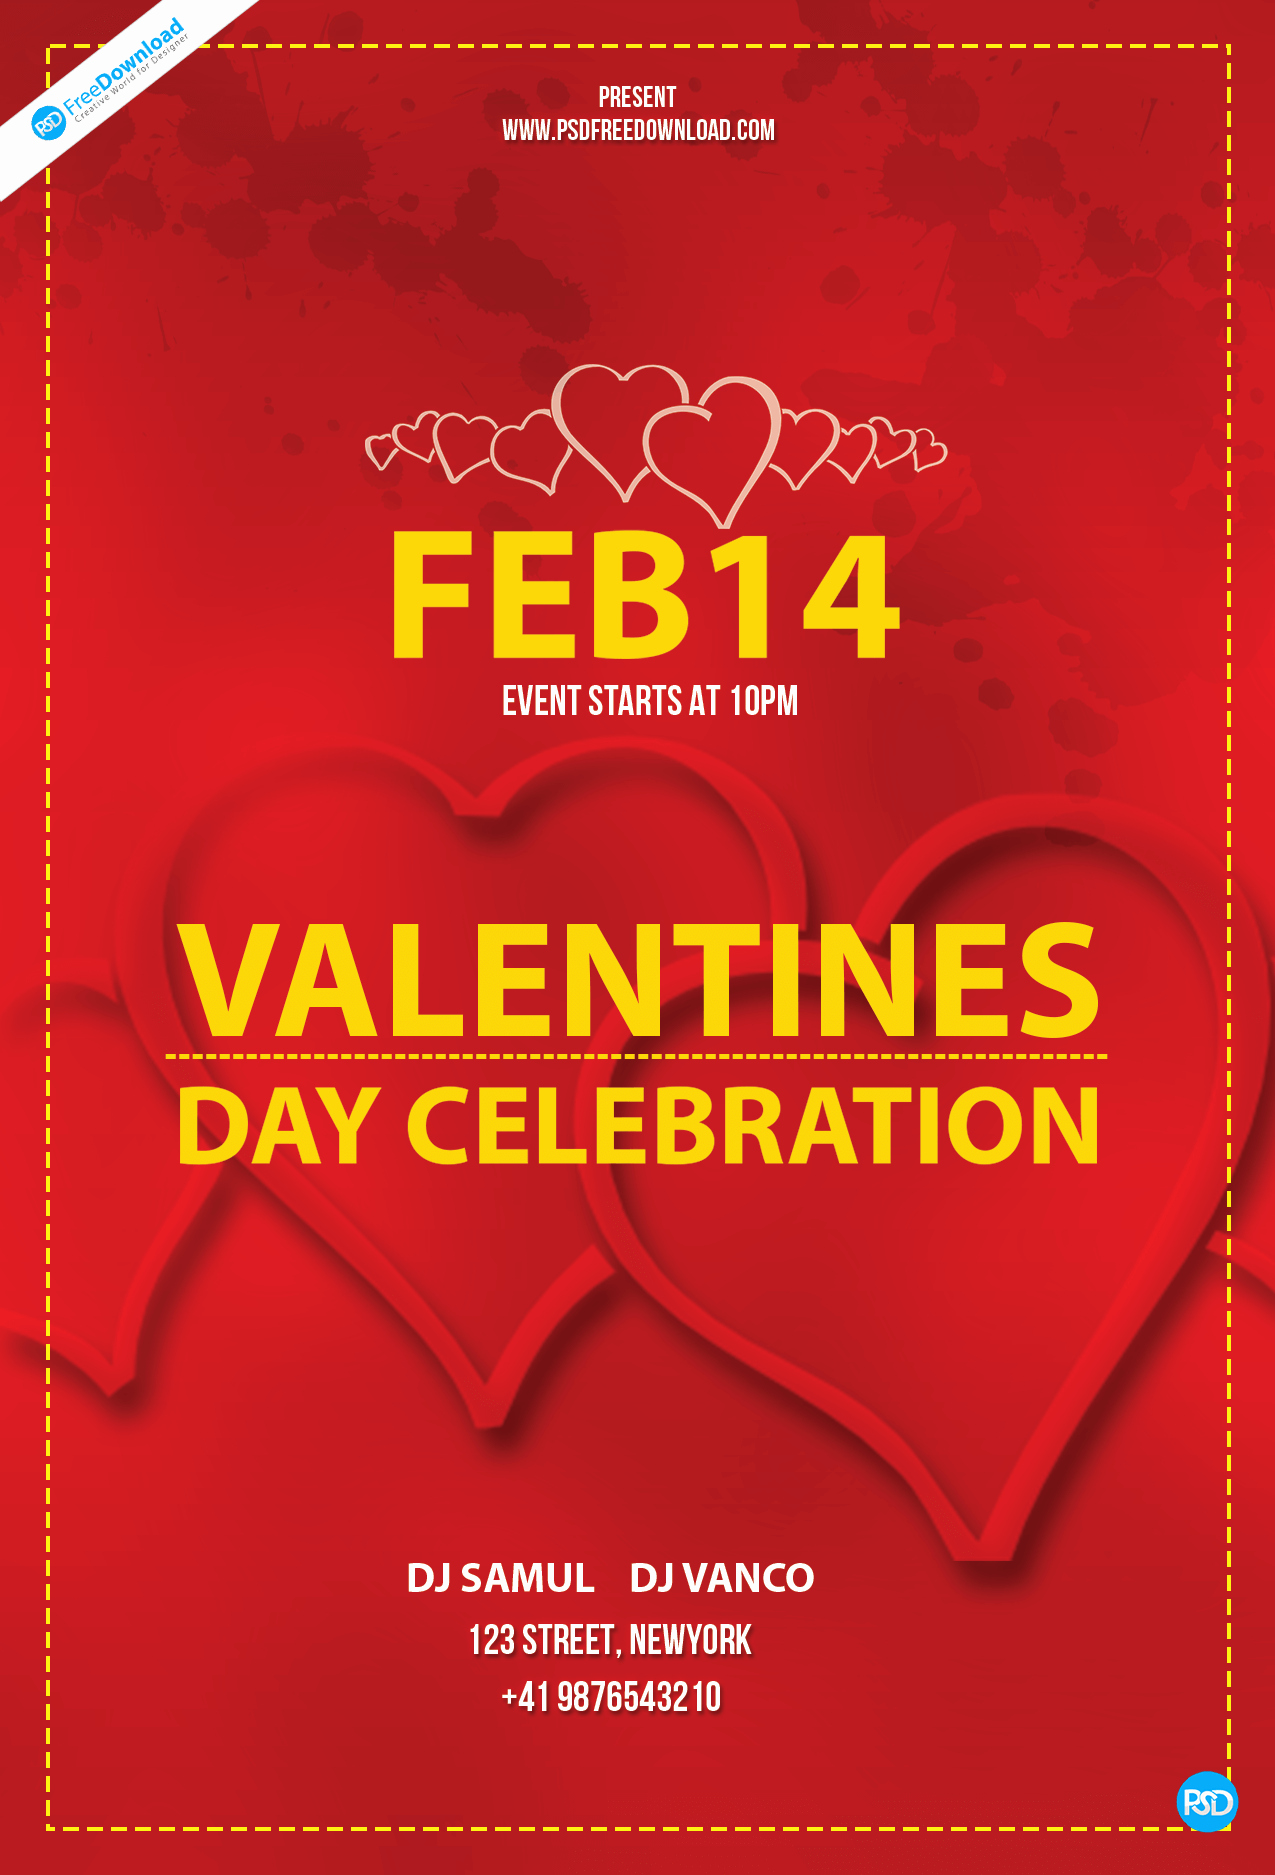 Valentines Day Flyer Template Free Elegant Free Valentines Day Flyer Template